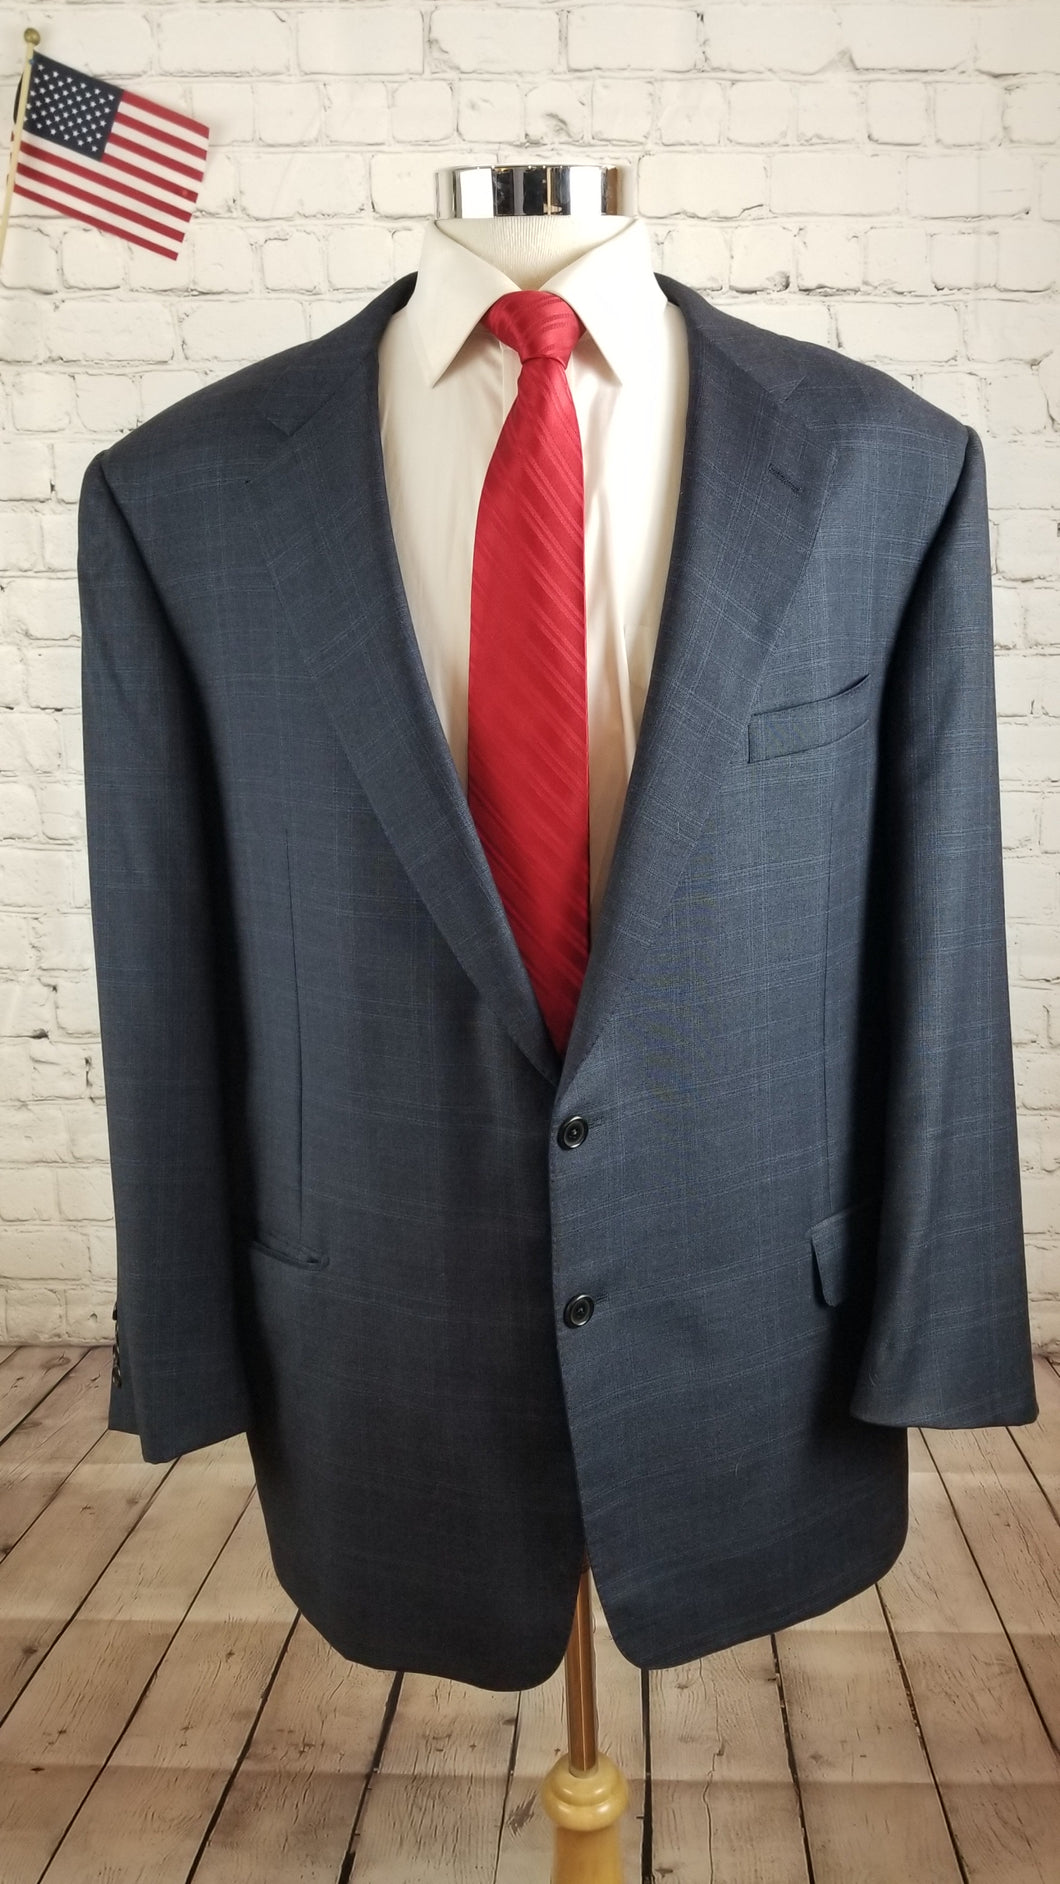 Hickey Freeman Men's Navy Blue Plaid Wool Blazer Sport Coat Suit Jacket Size 44R $1,148 - SUIT CHARITY OUTLET